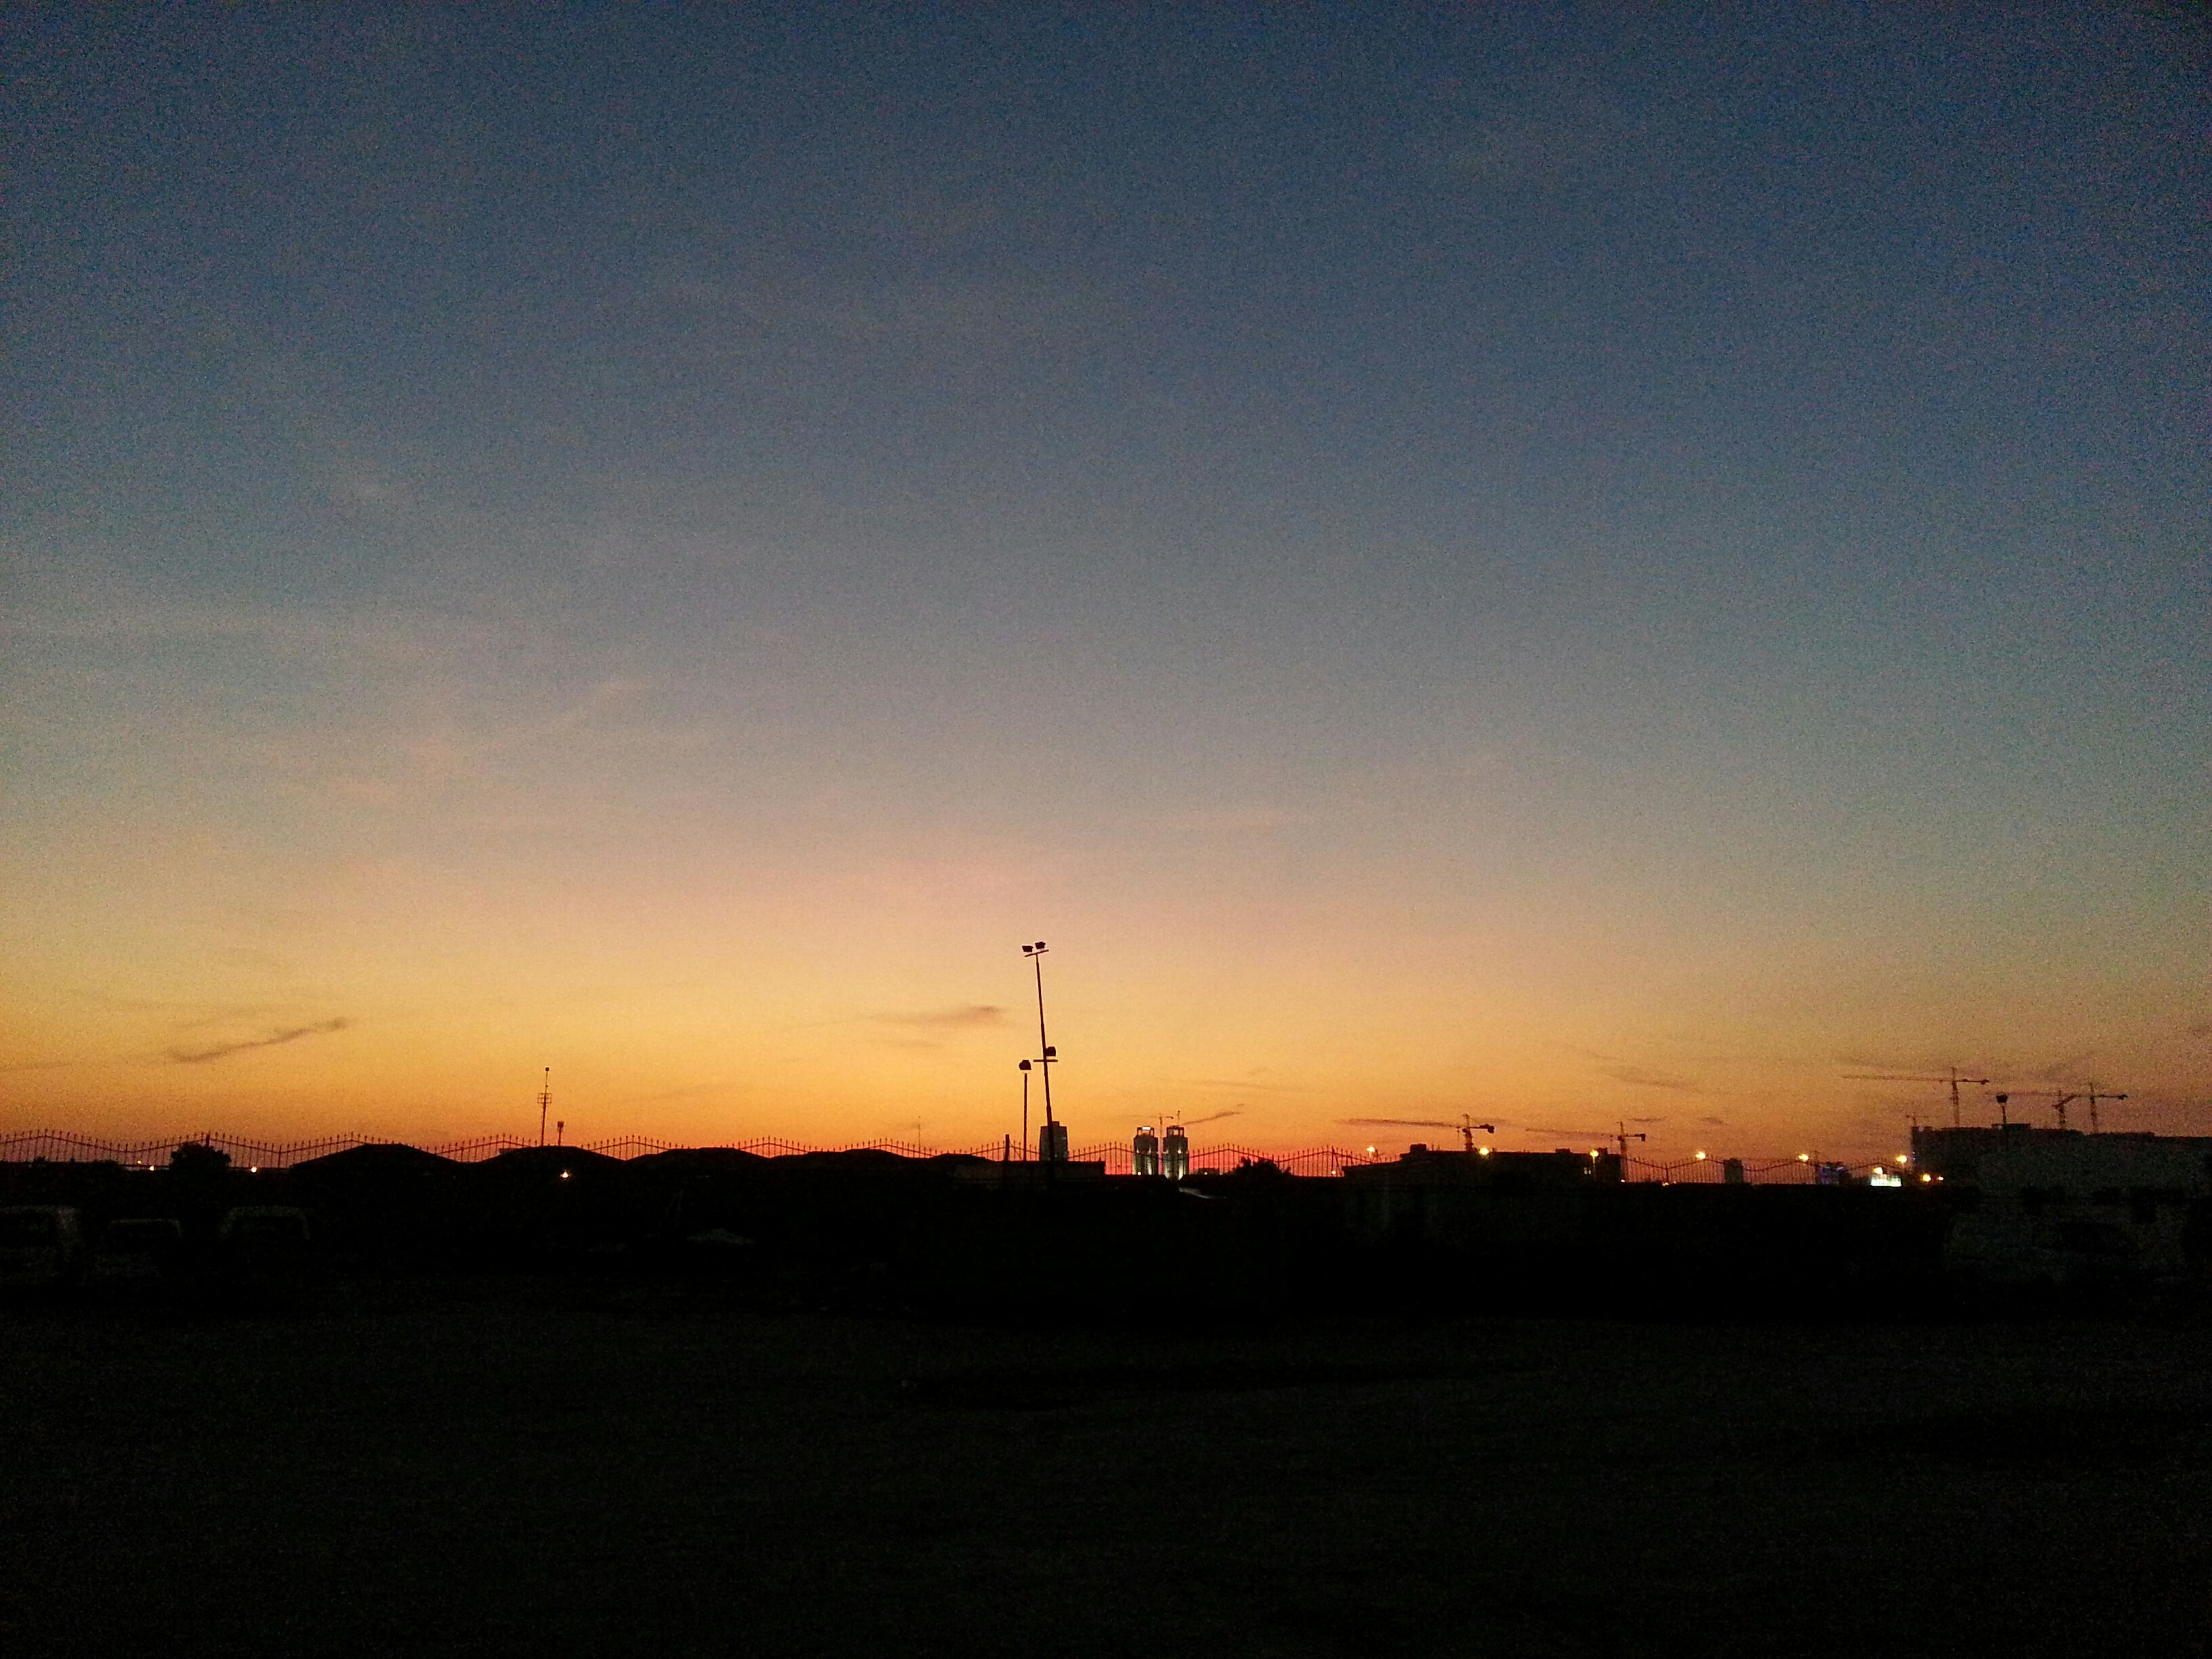 sunset, silhouette, copy space, orange color, clear sky, landscape, scenics, tranquility, tranquil scene, dusk, sky, beauty in nature, dark, built structure, nature, building exterior, outdoors, architecture, blue, idyllic